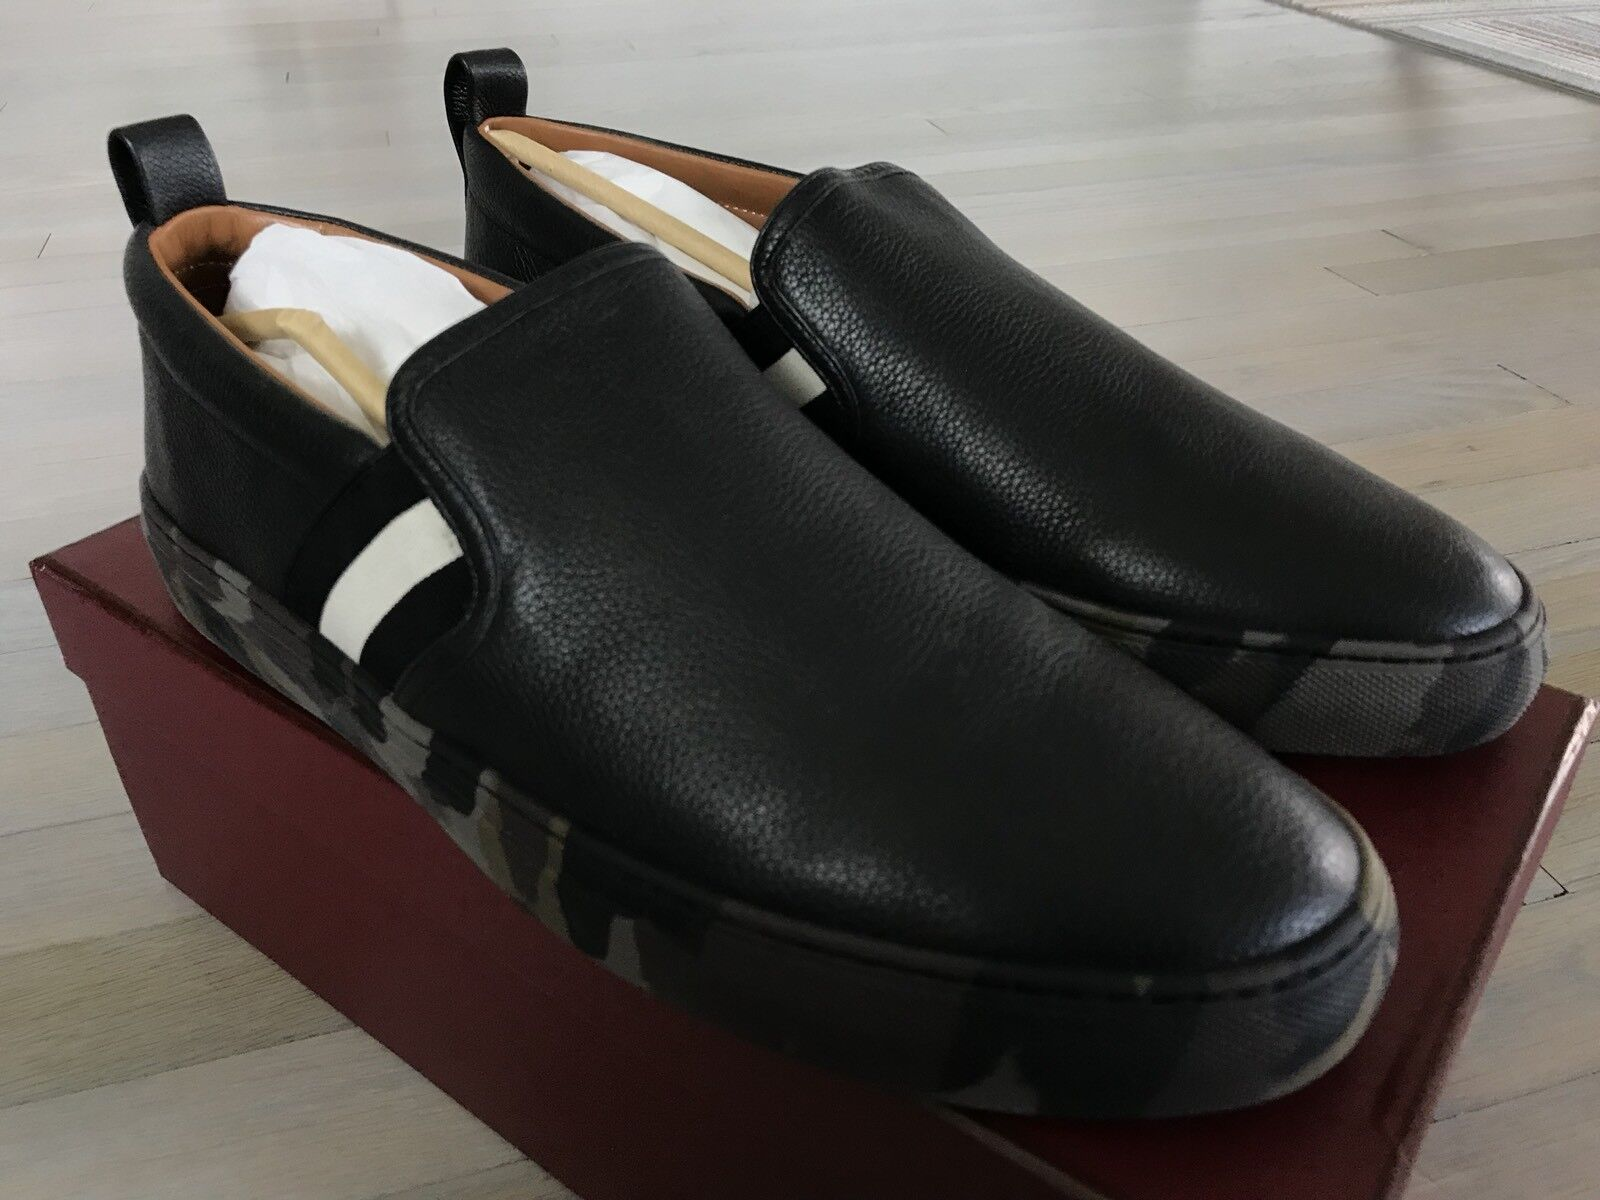 698ed19978f 550  Bally Herald 300 Black Leather Slip on Shoes Shoes Shoes size US 12.5  d92c2b